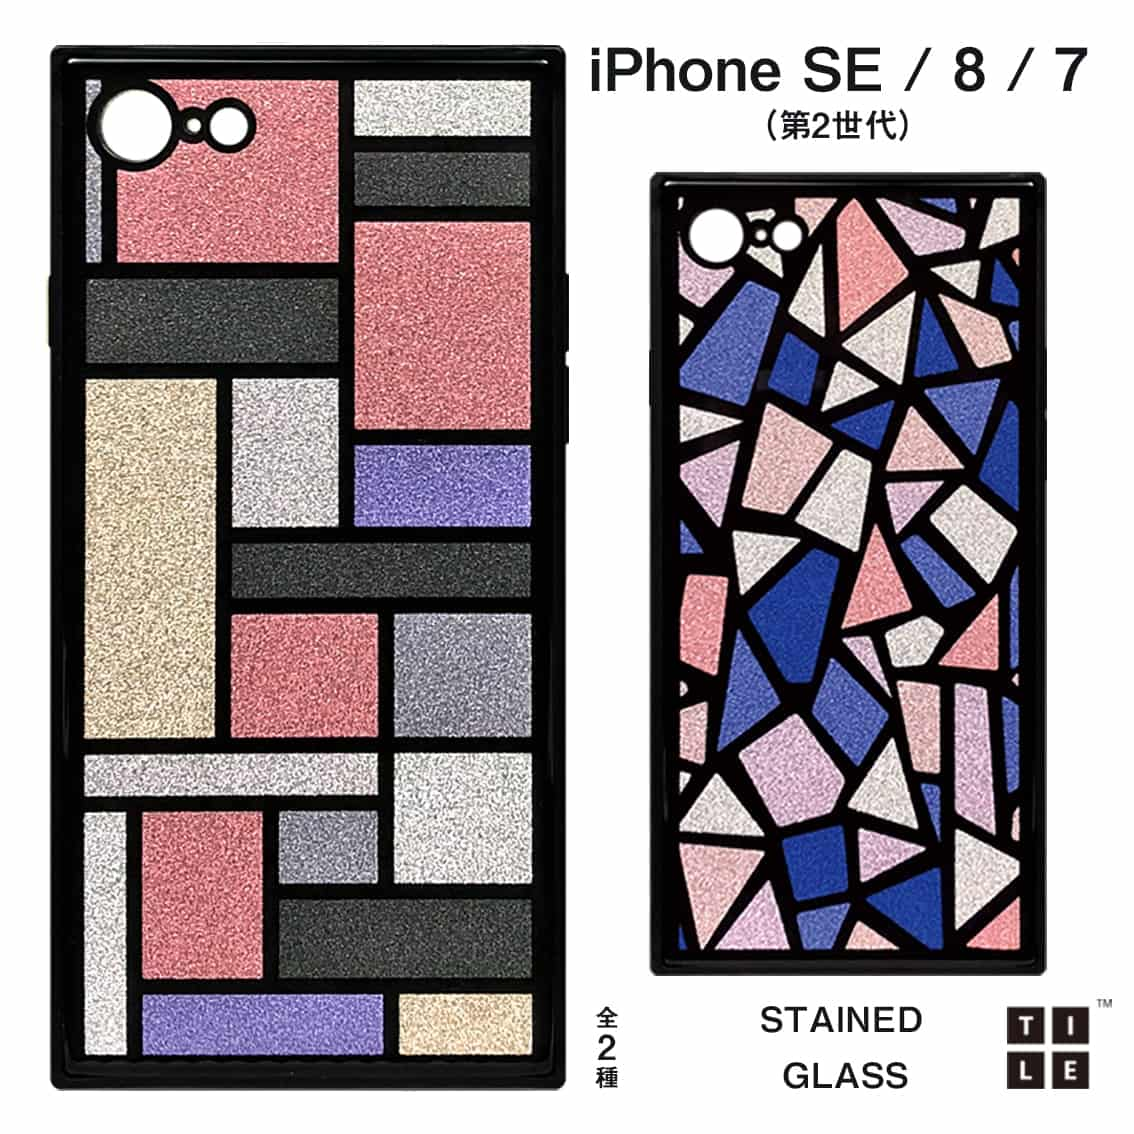 iPhone SE(第2世代)/8/7ケース TILE スクエア型 [STAINED GLASS]